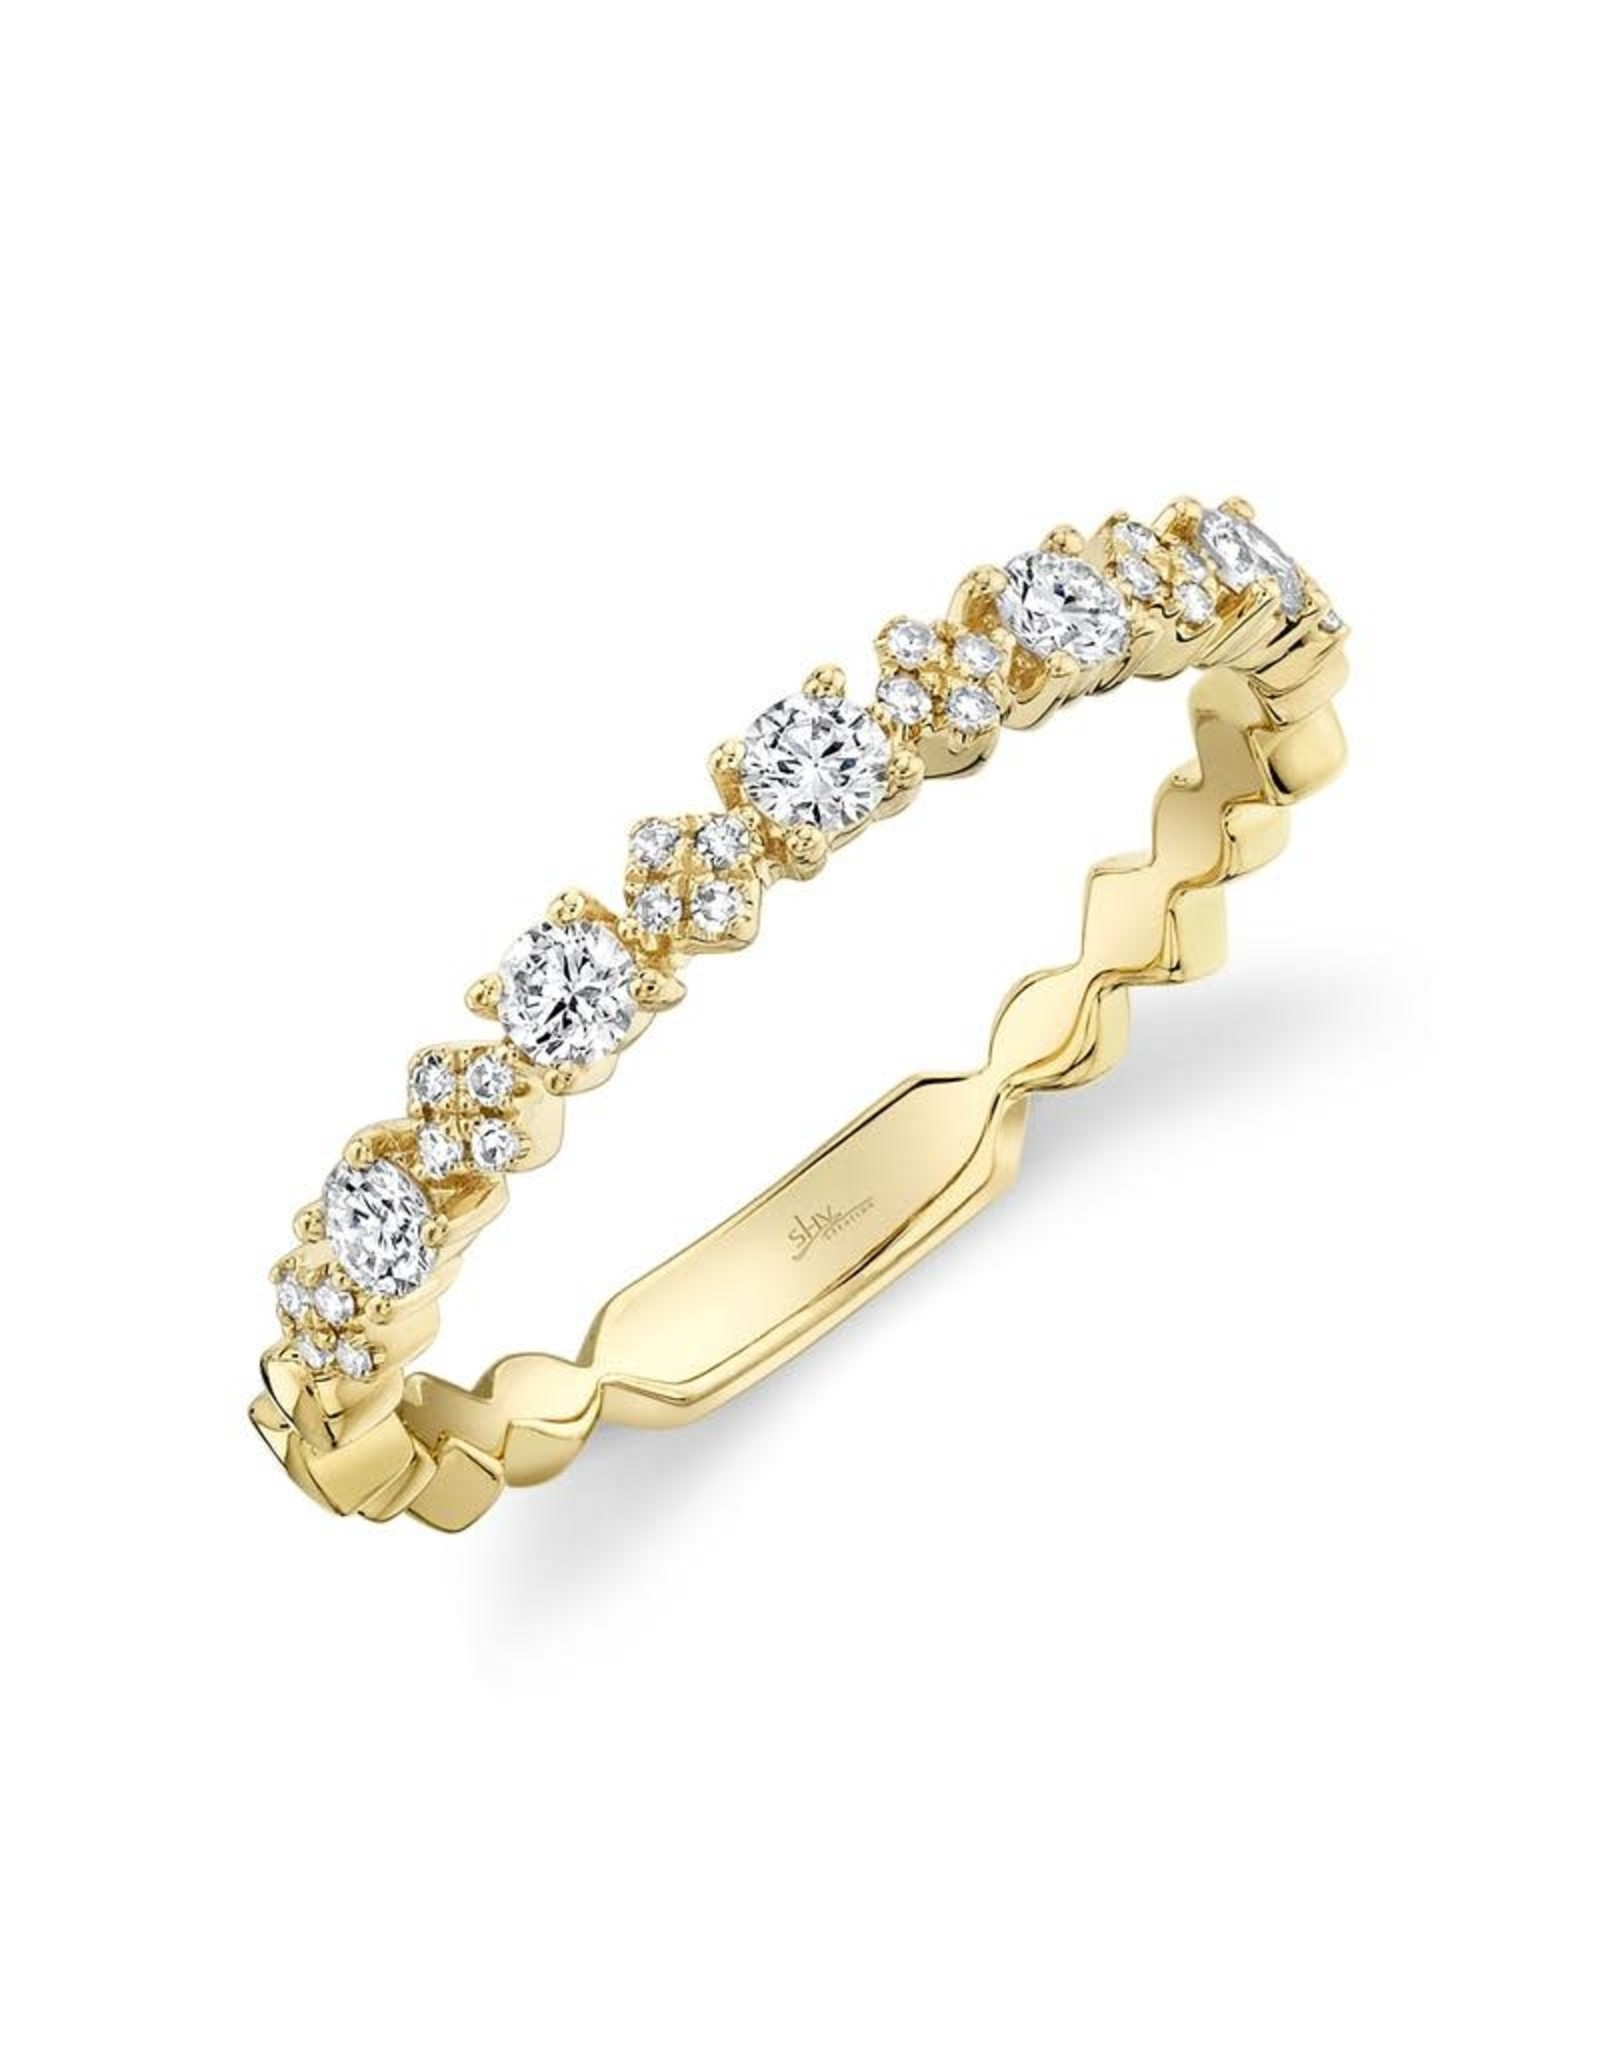 14K Yellow Gold Diamond Stackable Ring, D: 0.29ct